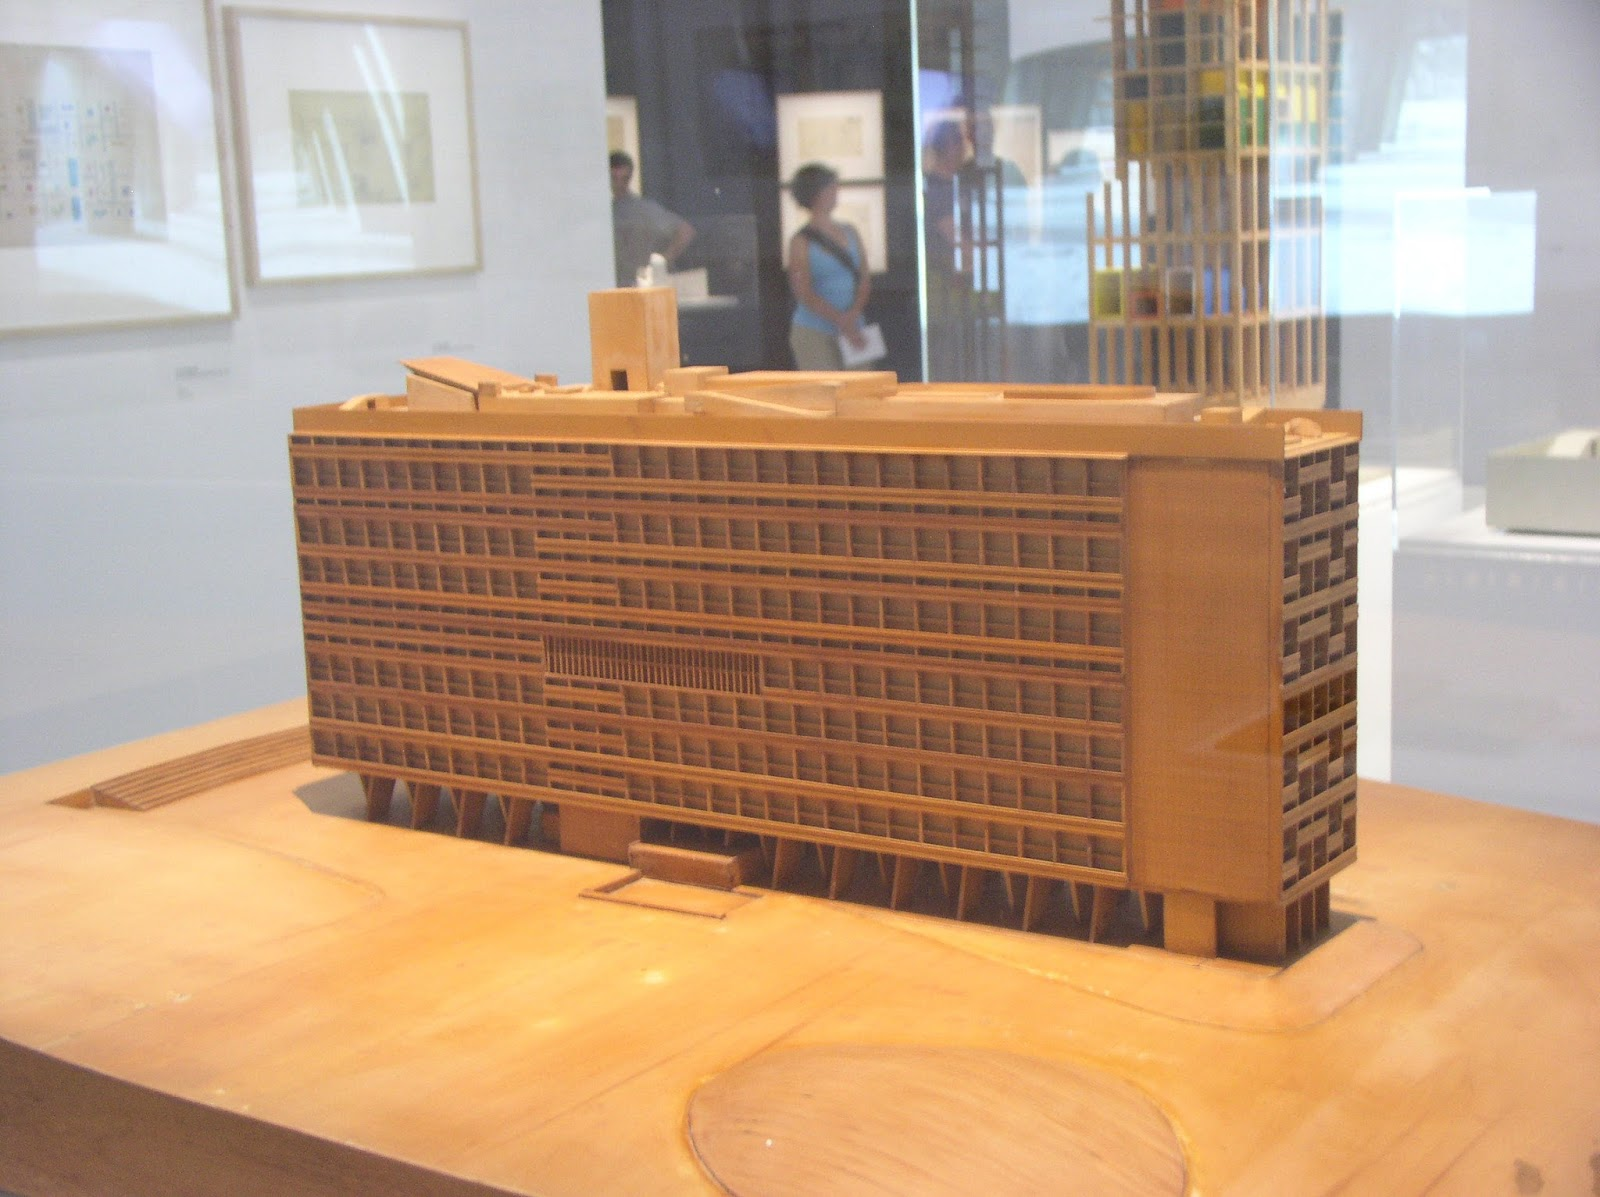 Models Of Le Corbusieru0027s Buildings. Maquette Gratte Ciel Cartésien, (Model  Of Cartesian Skyscraper), 1937